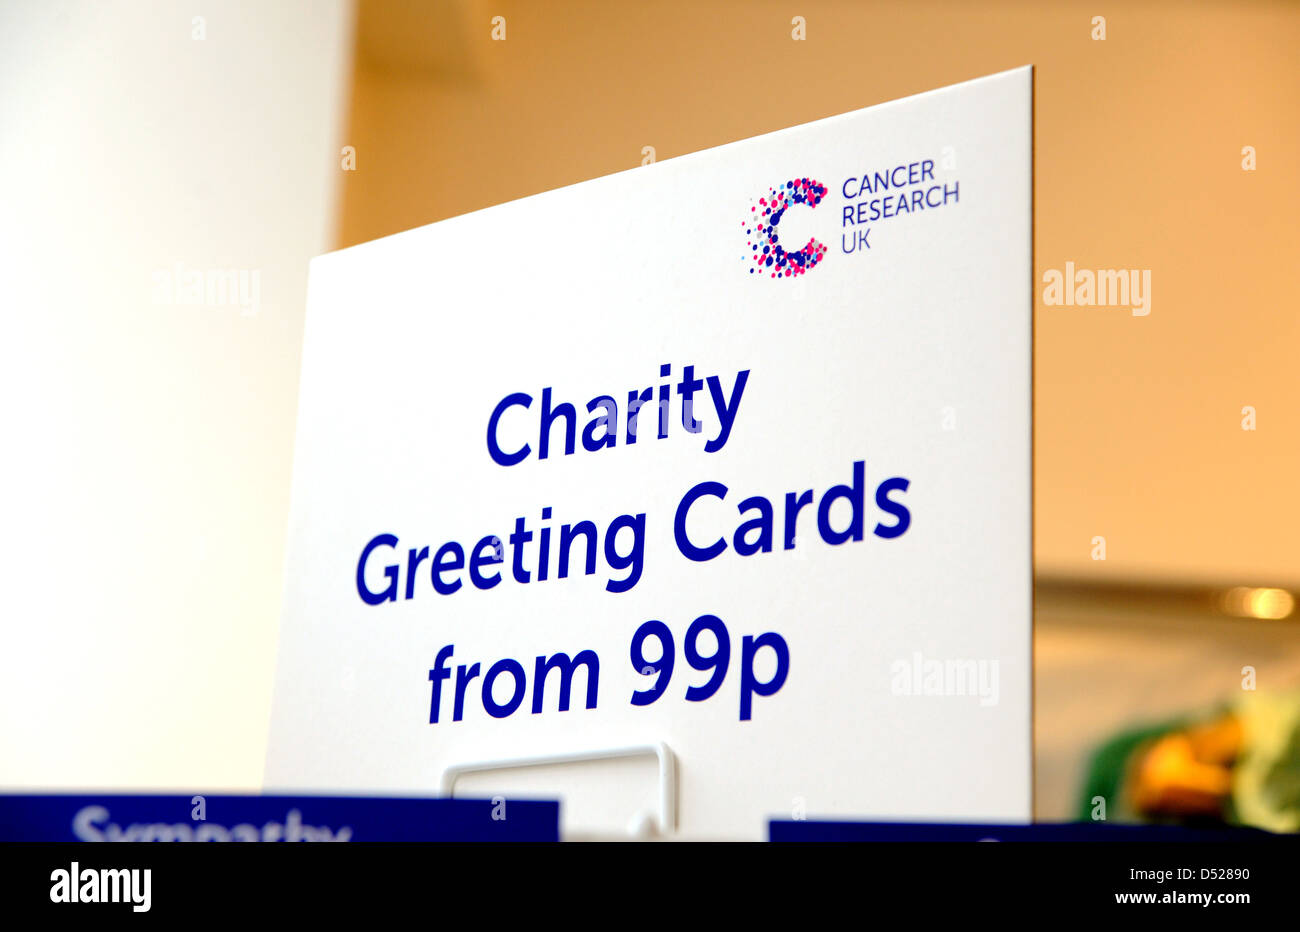 Charity greetings cards stand at a cancer research uk charity shop charity greetings cards stand at a cancer research uk charity shop kristyandbryce Images